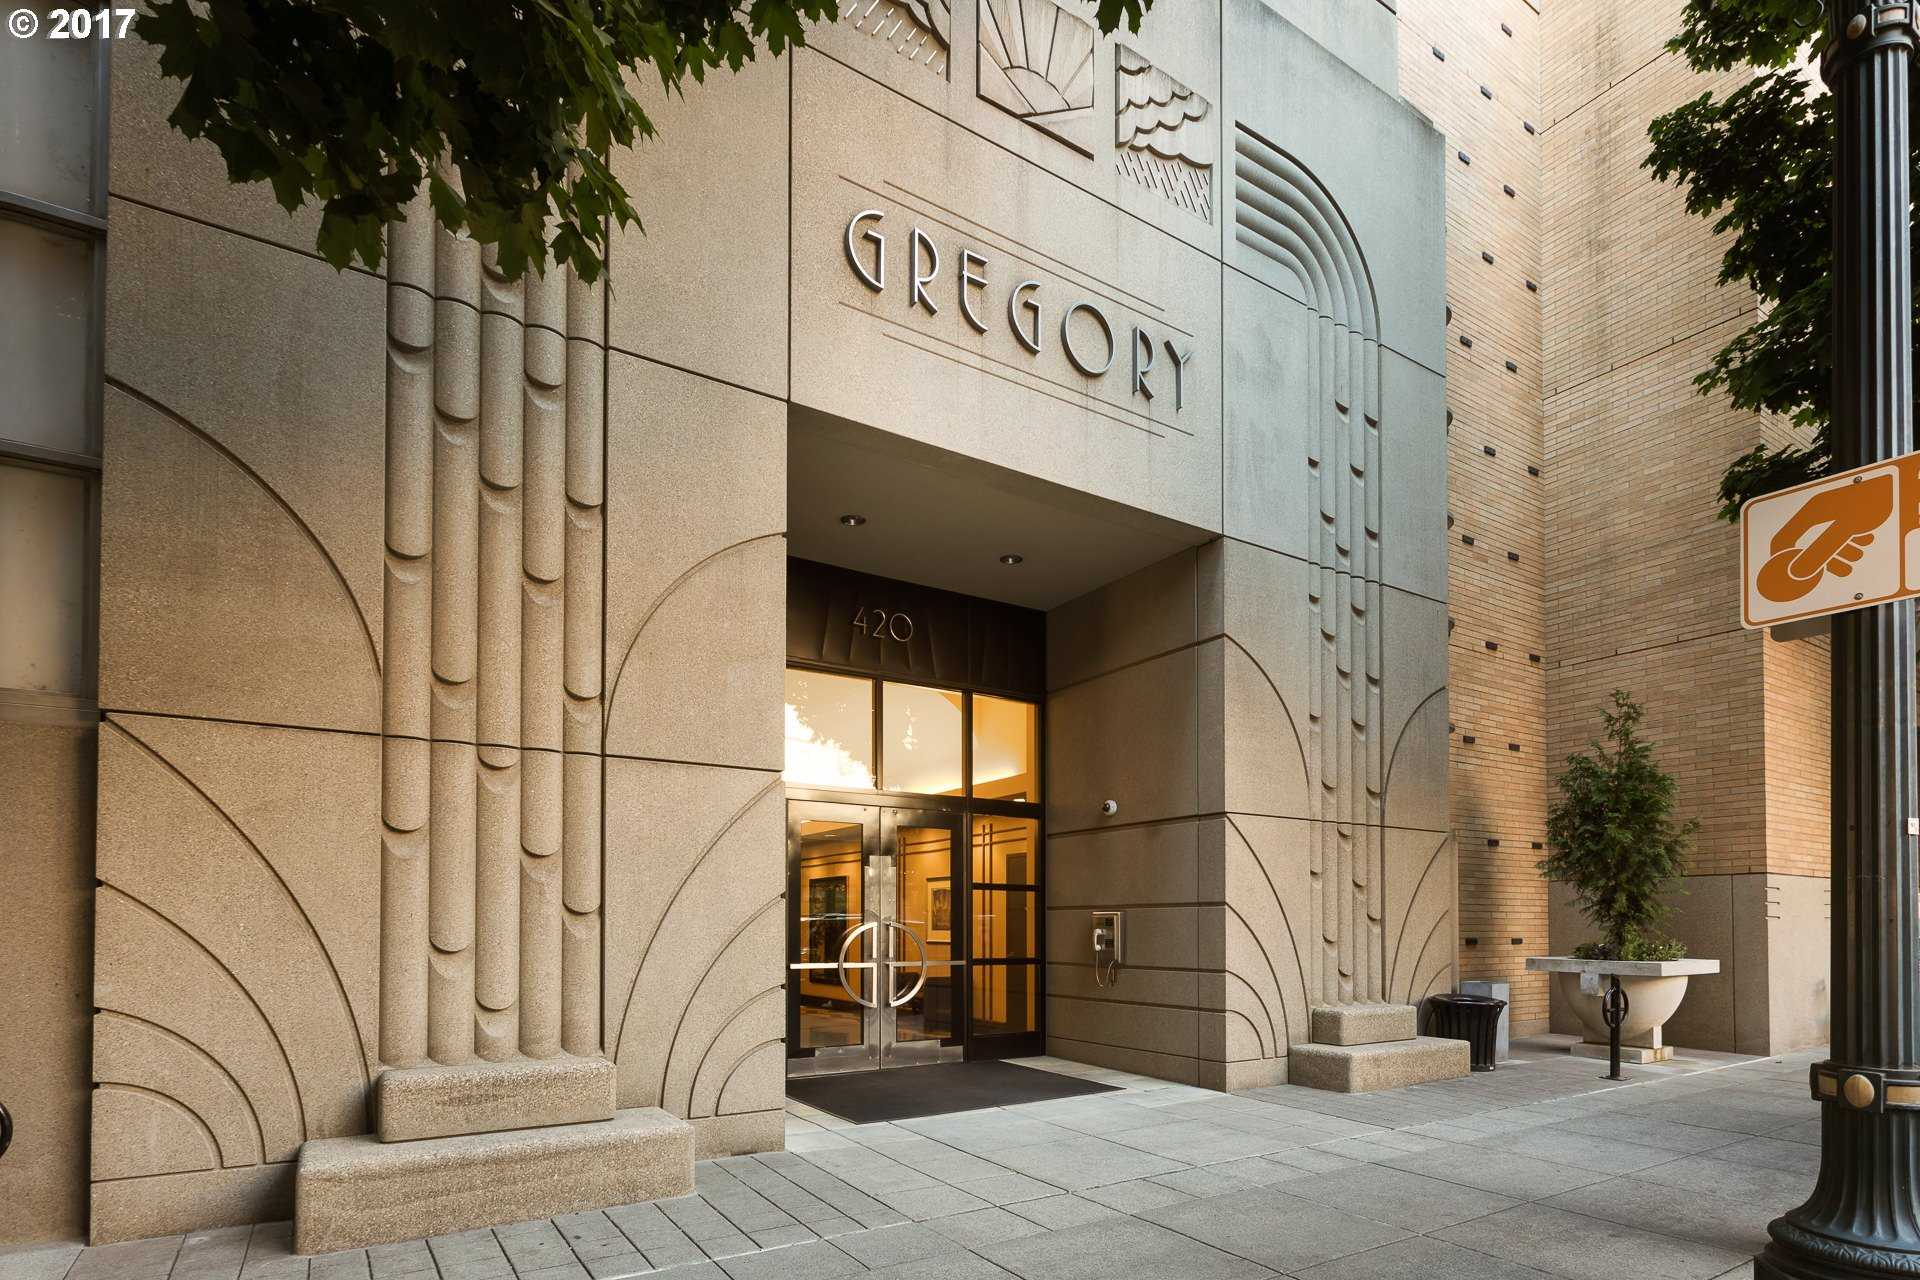 $660,000 - 1Br/2Ba -  for Sale in Pearl District / Gregory, Portland